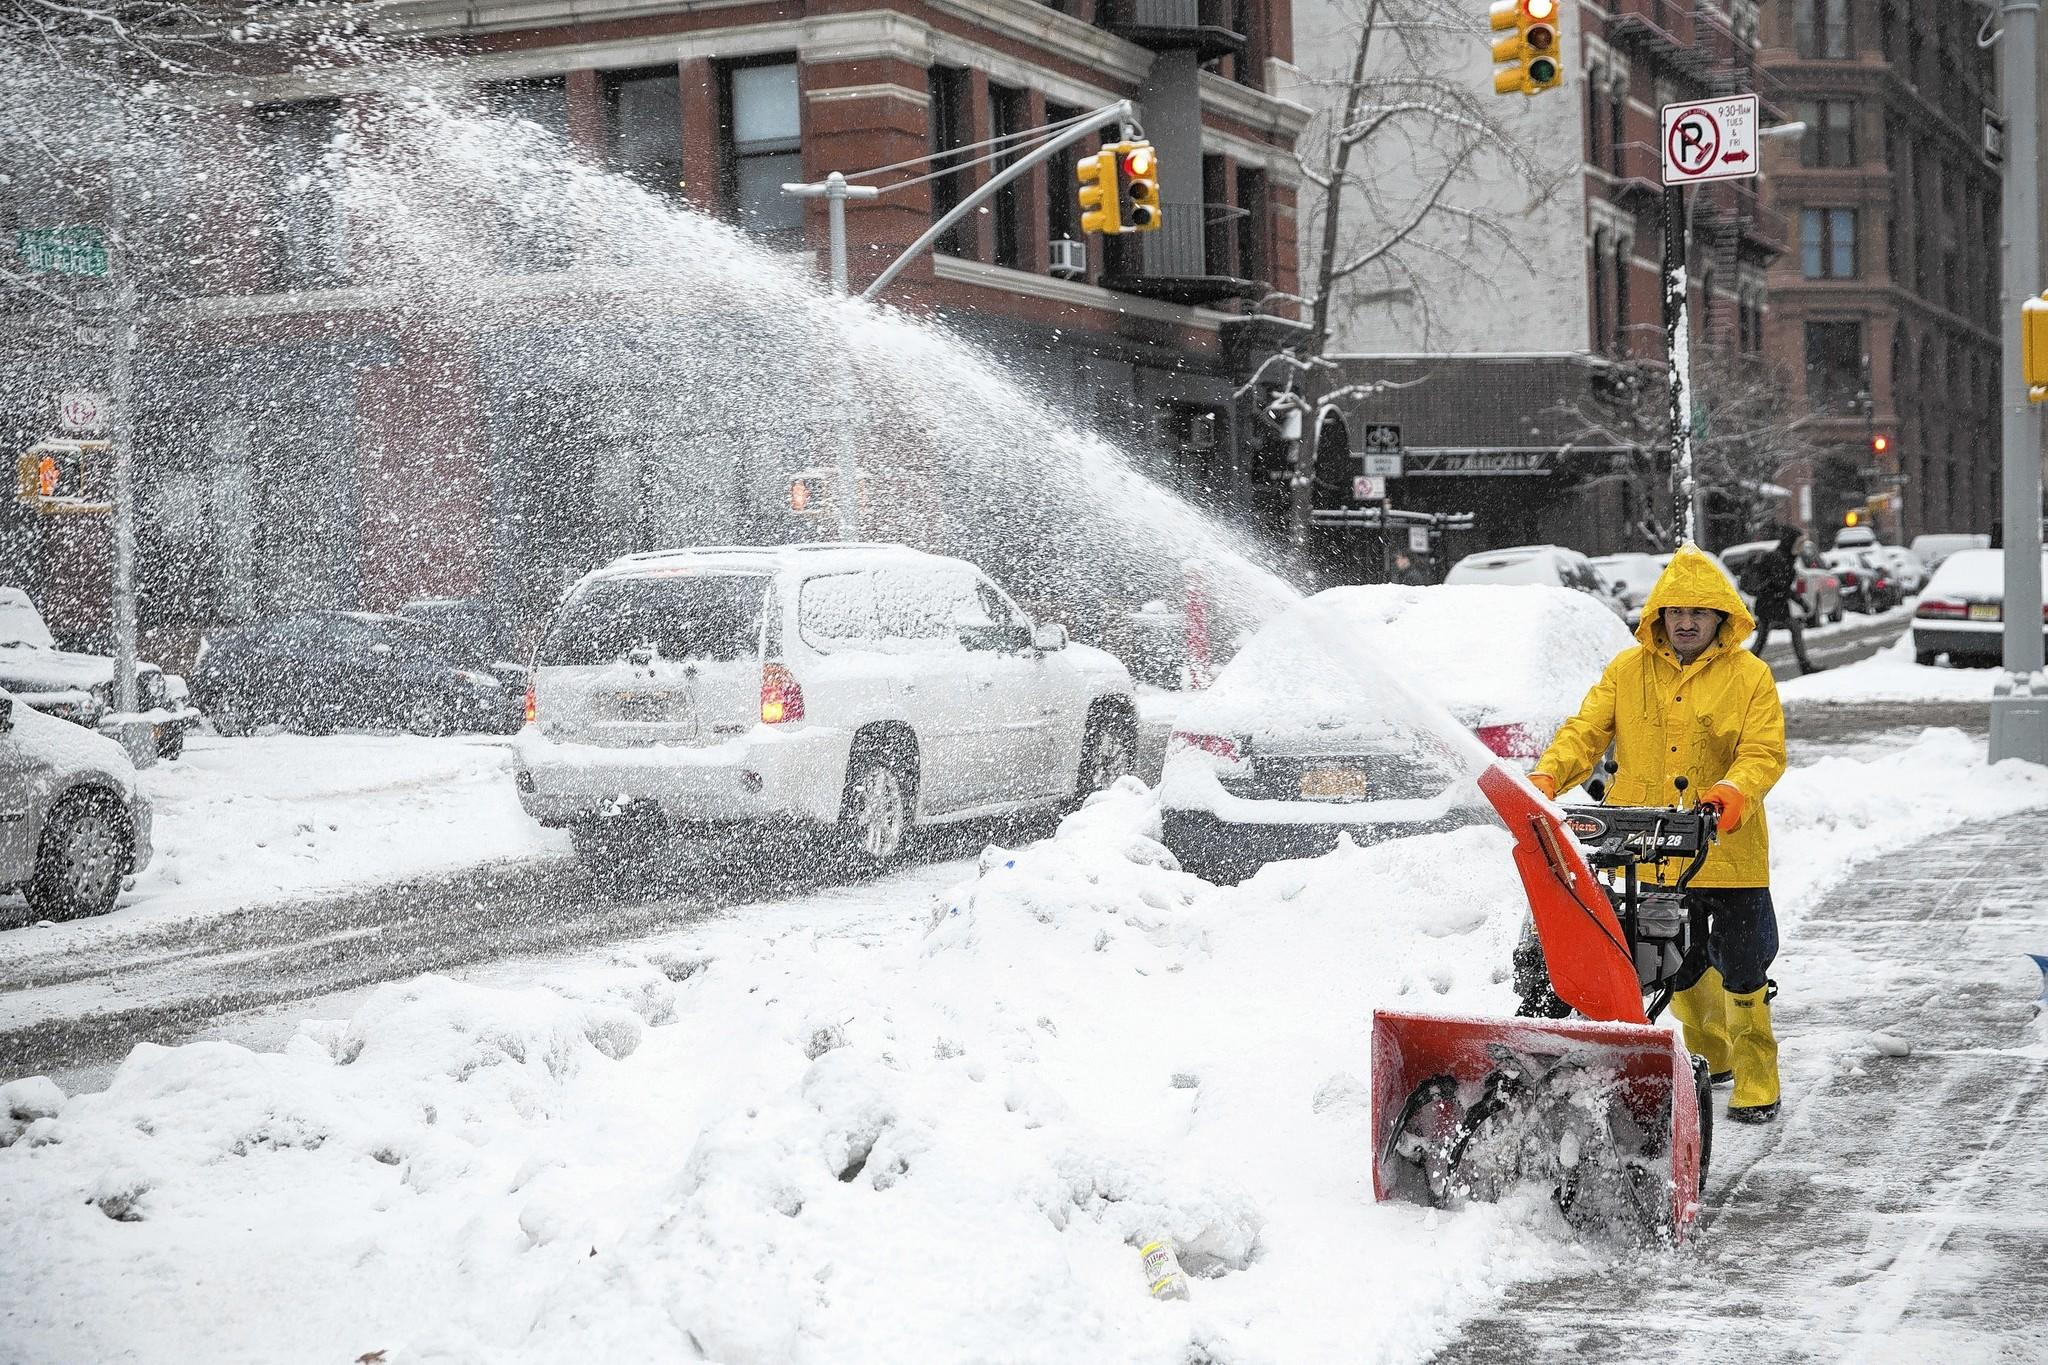 A man uses a snow blower to clear a sidewalk on February 18, 2014 in New York City. The city was hit with its 22nd day of snowfall, making for a total of 48 inches for the year.